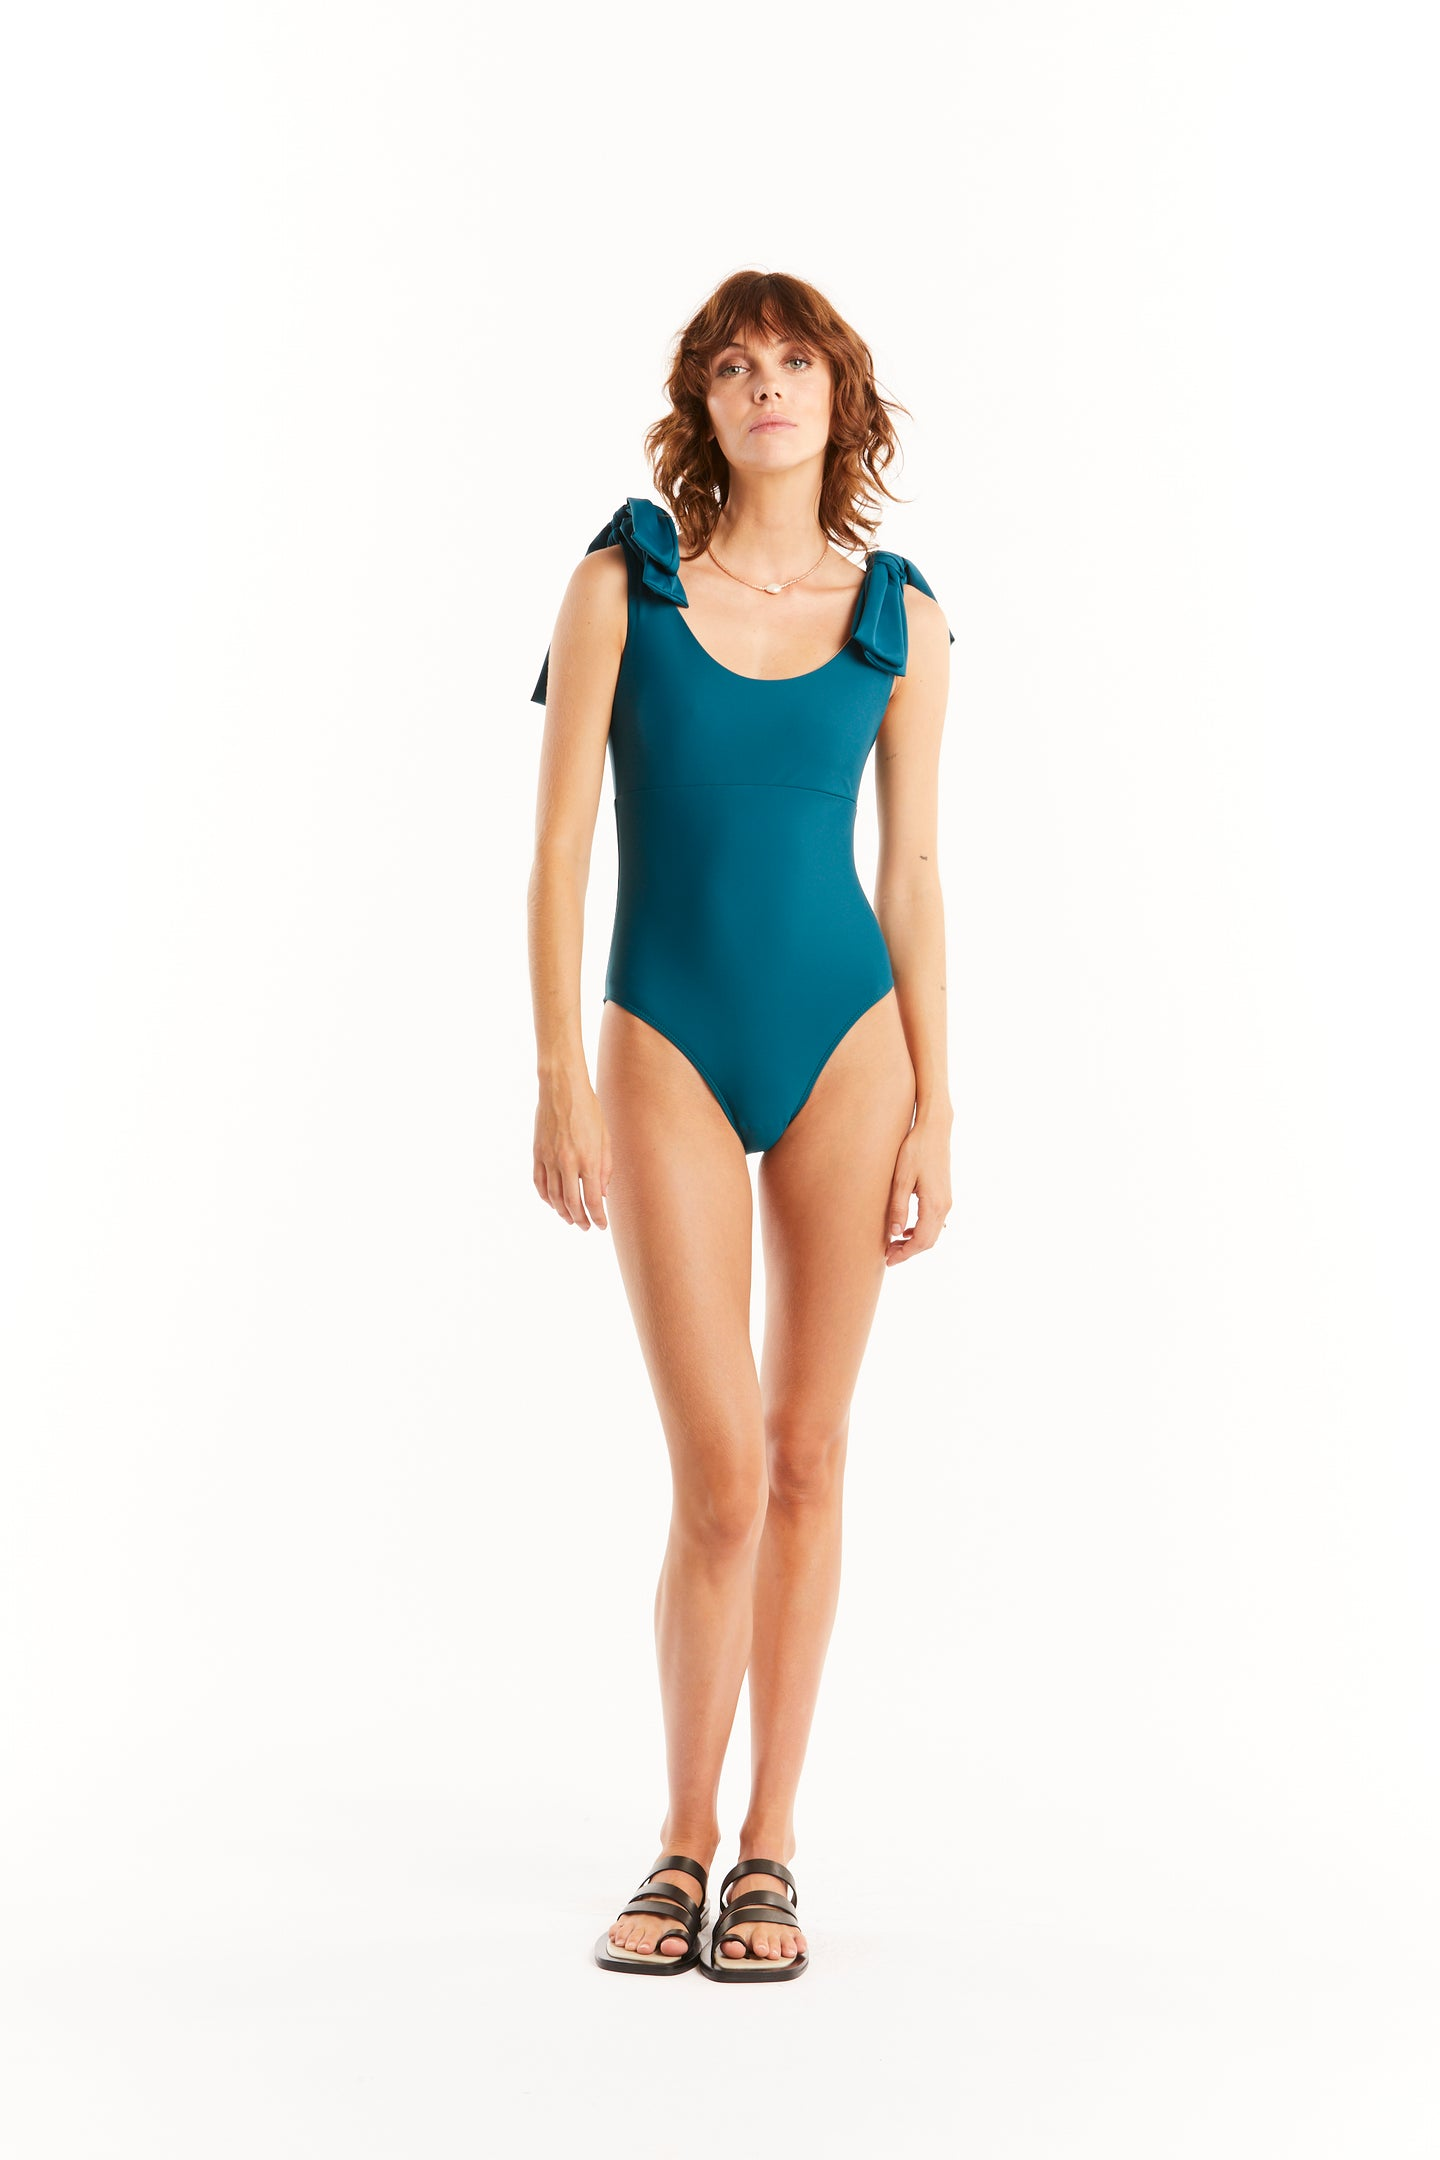 BOW ONEPIECE - TEAL